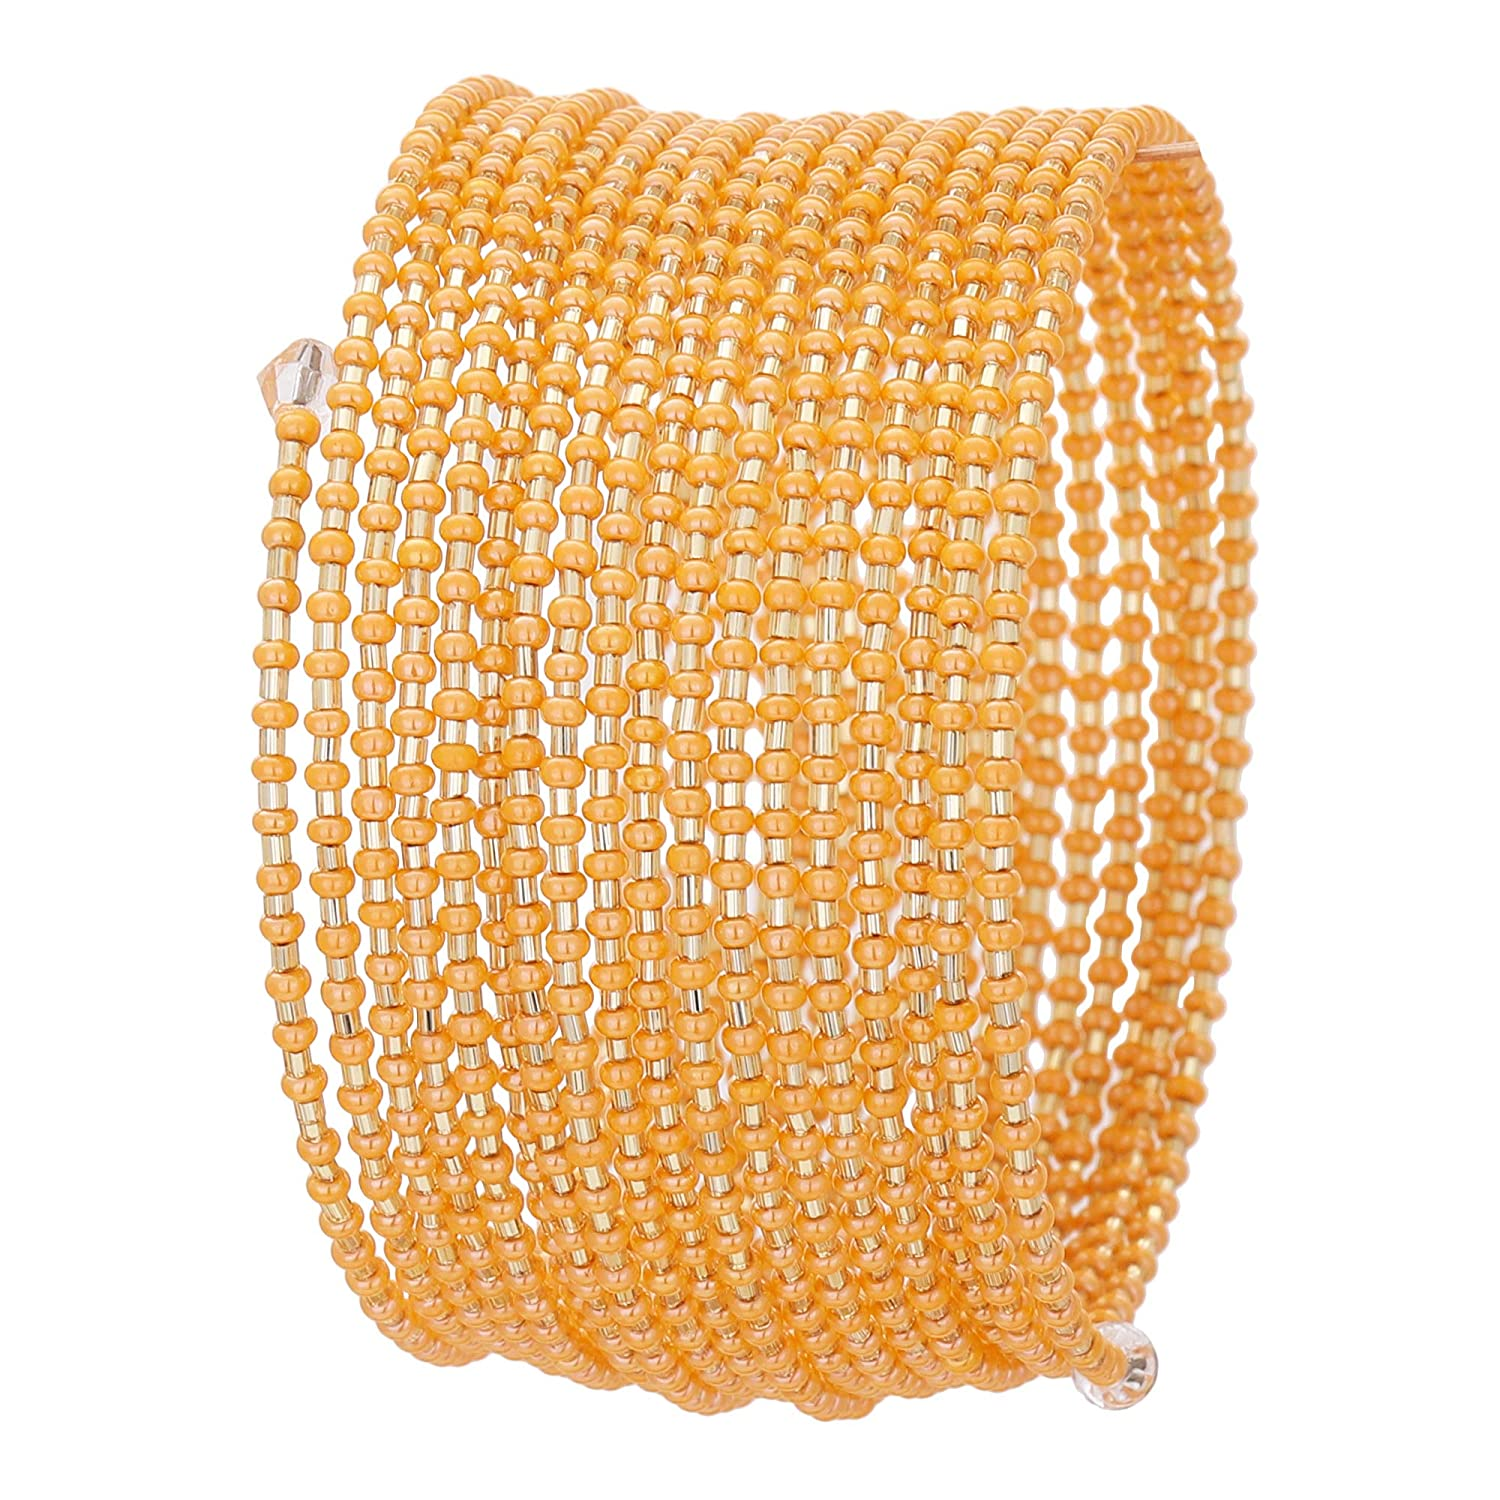 El Allure Preciosa Jablonex Seed Bead Orange and Golden Japanese Cut Dana Trendy Handmade Fine Bangle for Women.